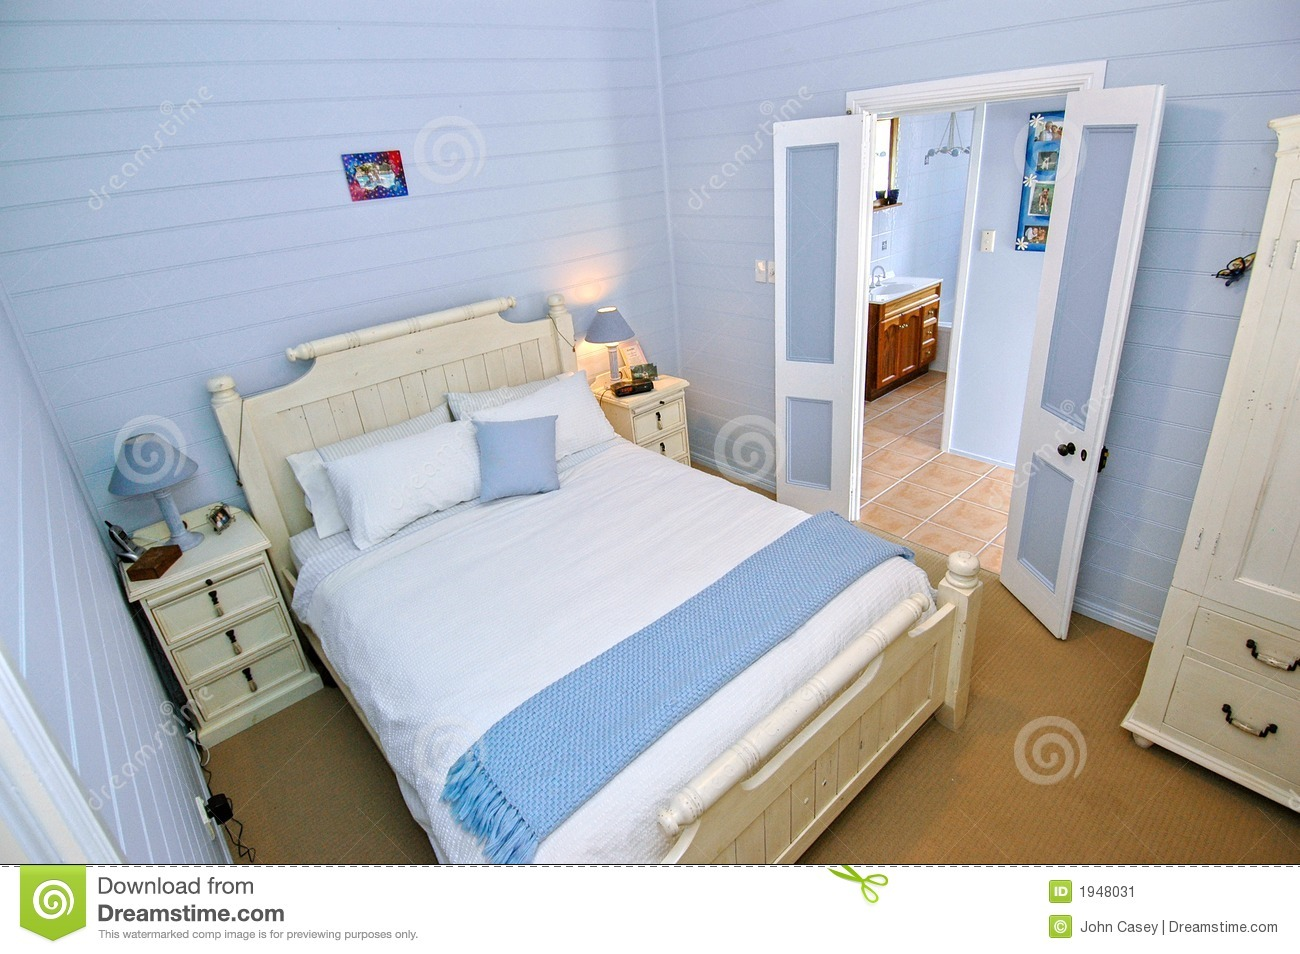 Bedroom With Light Blue Walls Stock Image  Image 1948031